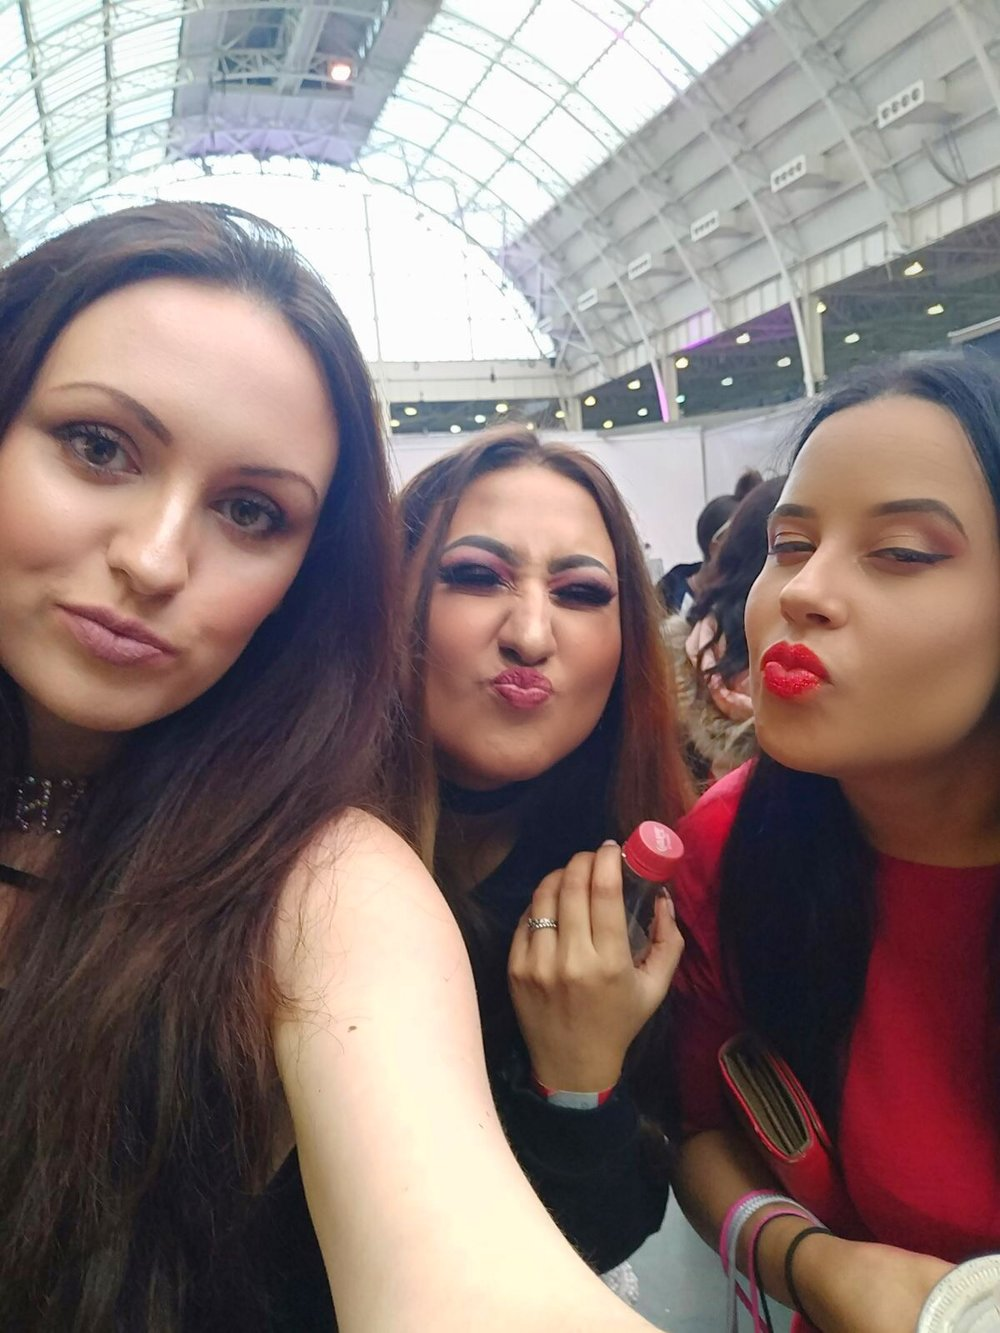 Poutlicious vibes by from Ness, Naila and I. Any excuse for a SELFIE, eh!